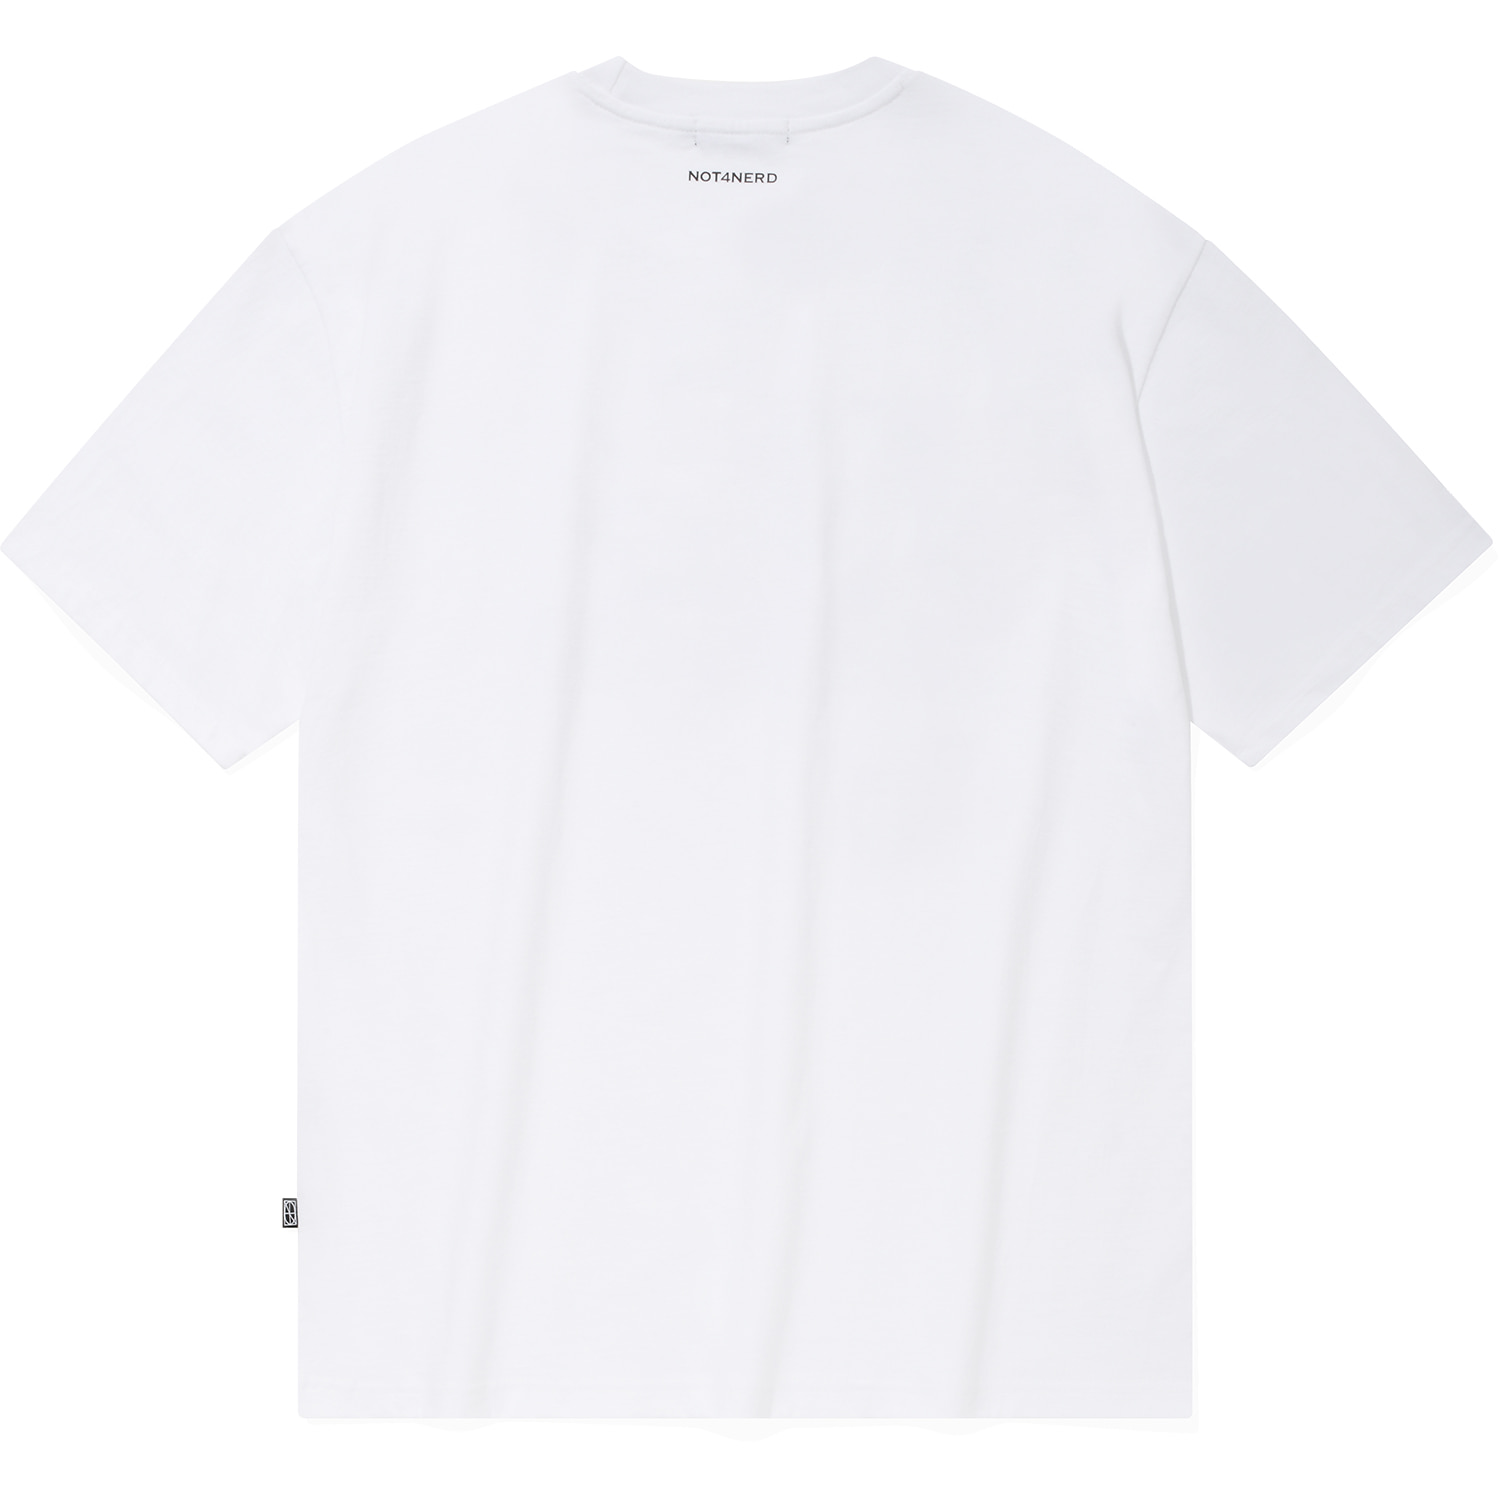 Nuclear T-Shirts White,NOT4NERD